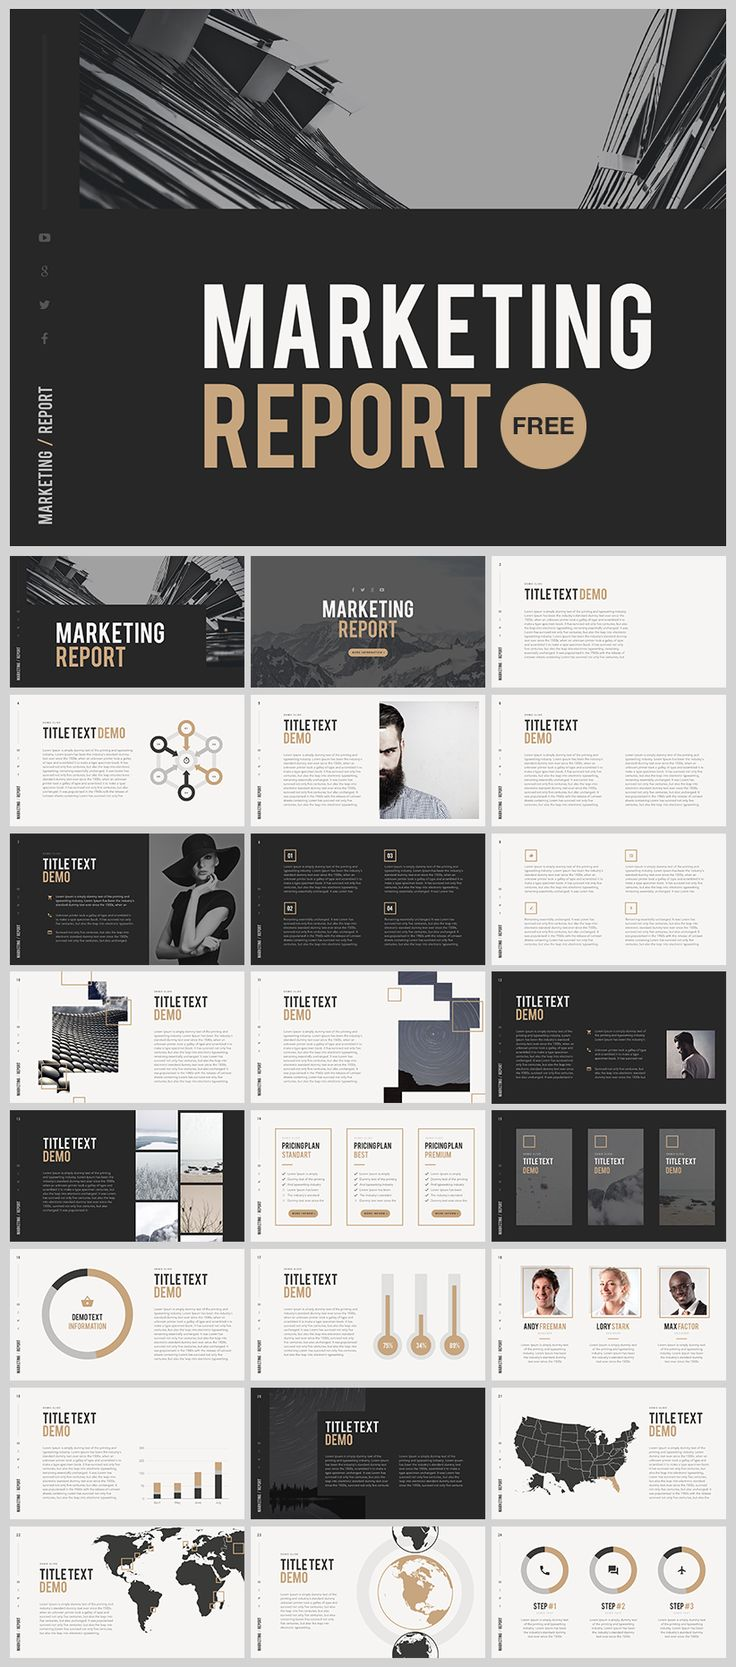 35 best free keynote template images on pinterest free stencils the marketing report free keynote template is designed to help at work more keynote templates for business and marketing toneelgroepblik Images